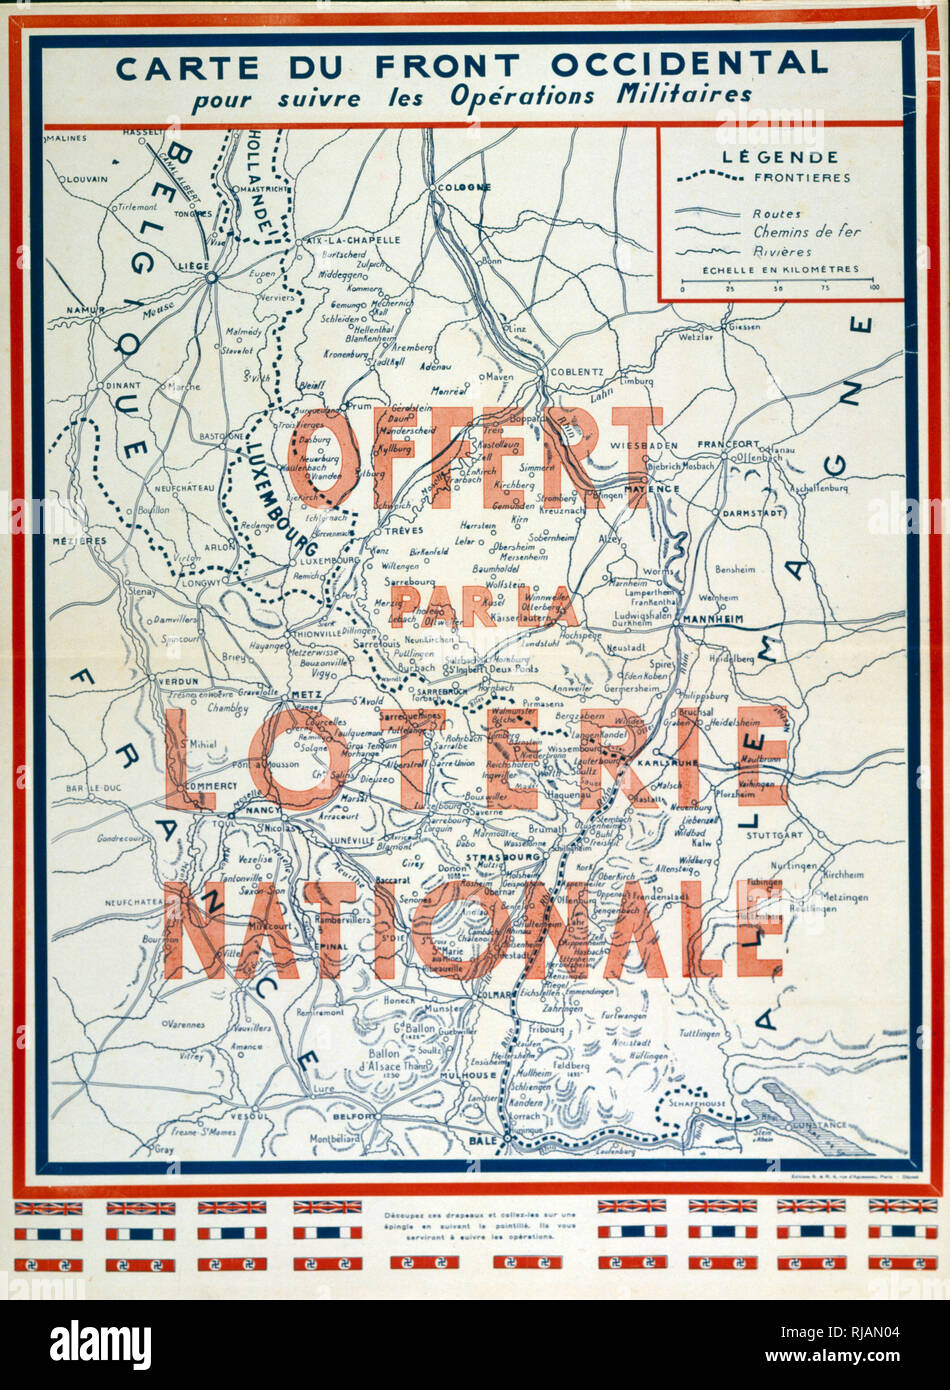 Map Of Germany In 1940.Map Issued By The French National Lottery Showing The Attack On